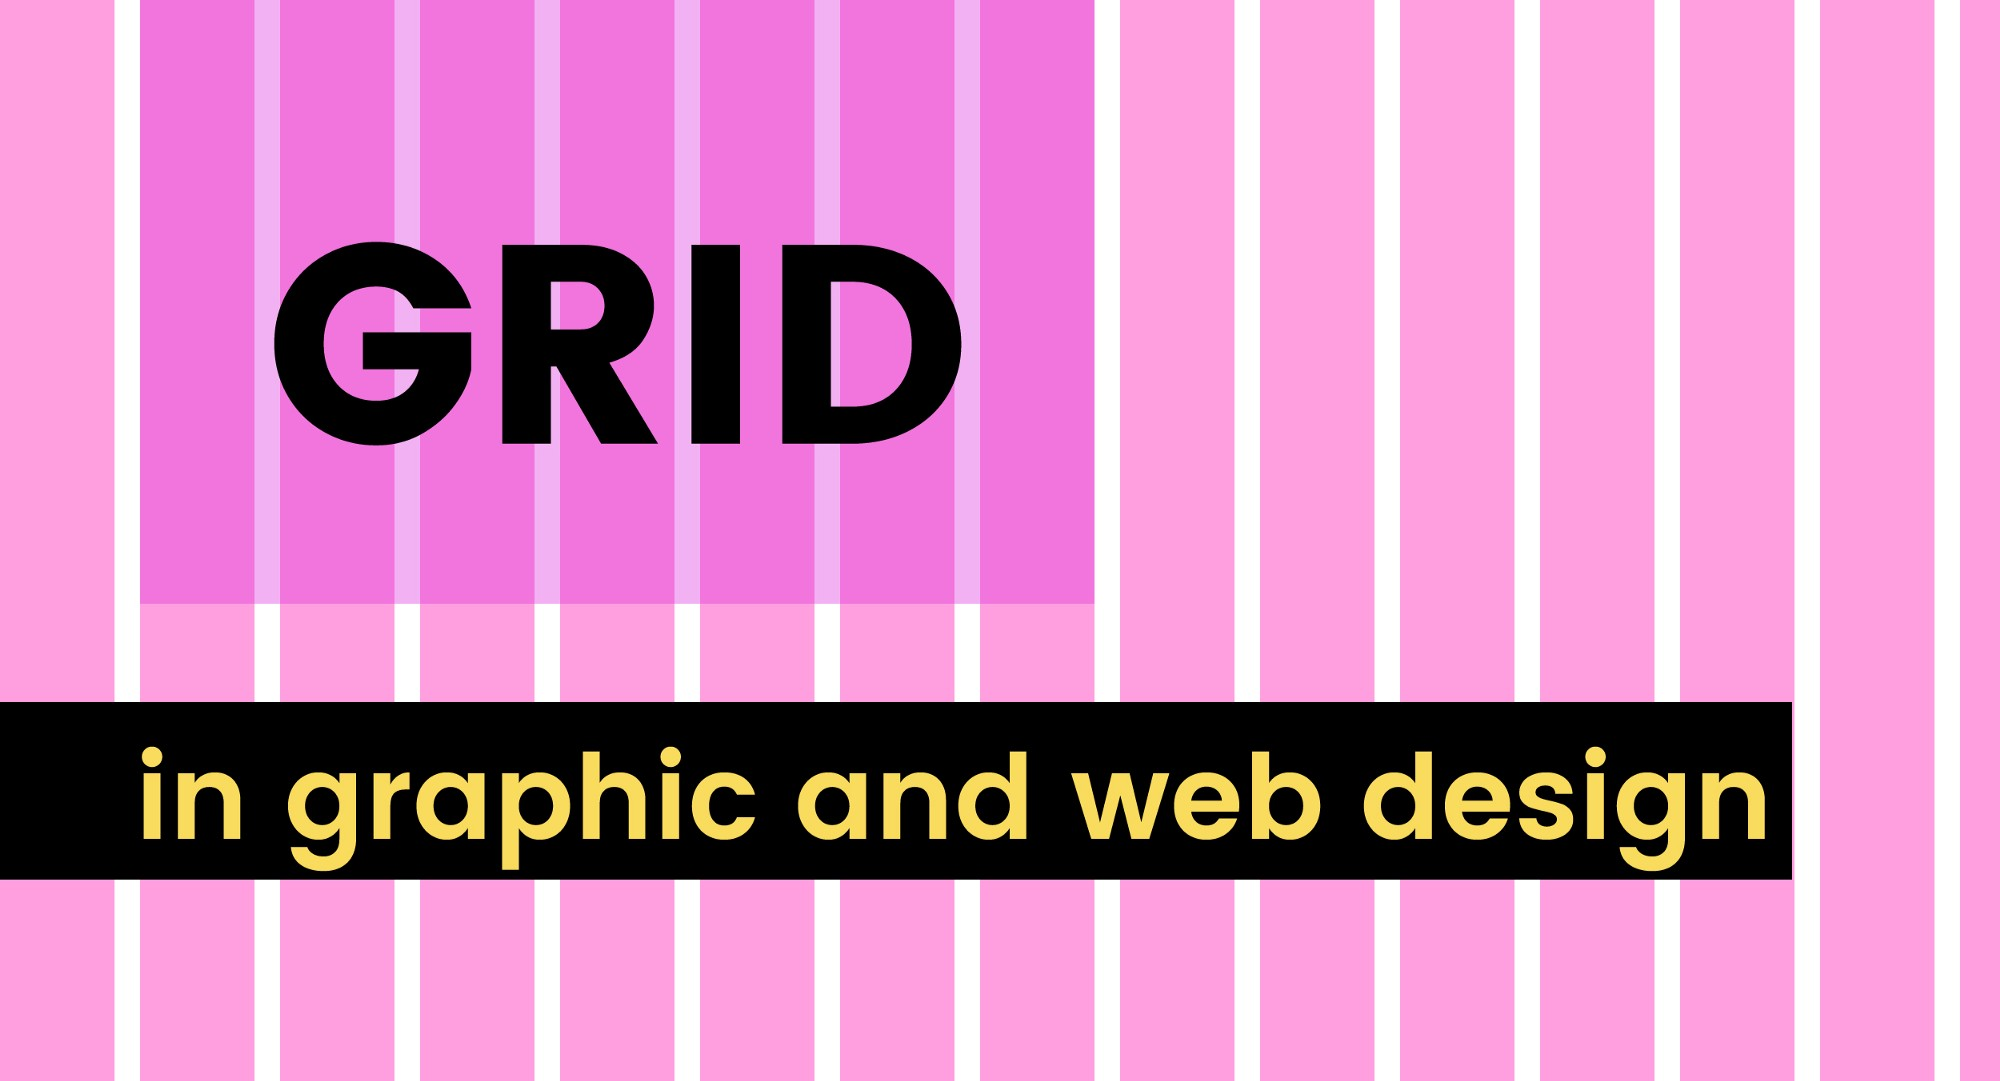 grids in graphic and web design gravit designer medium